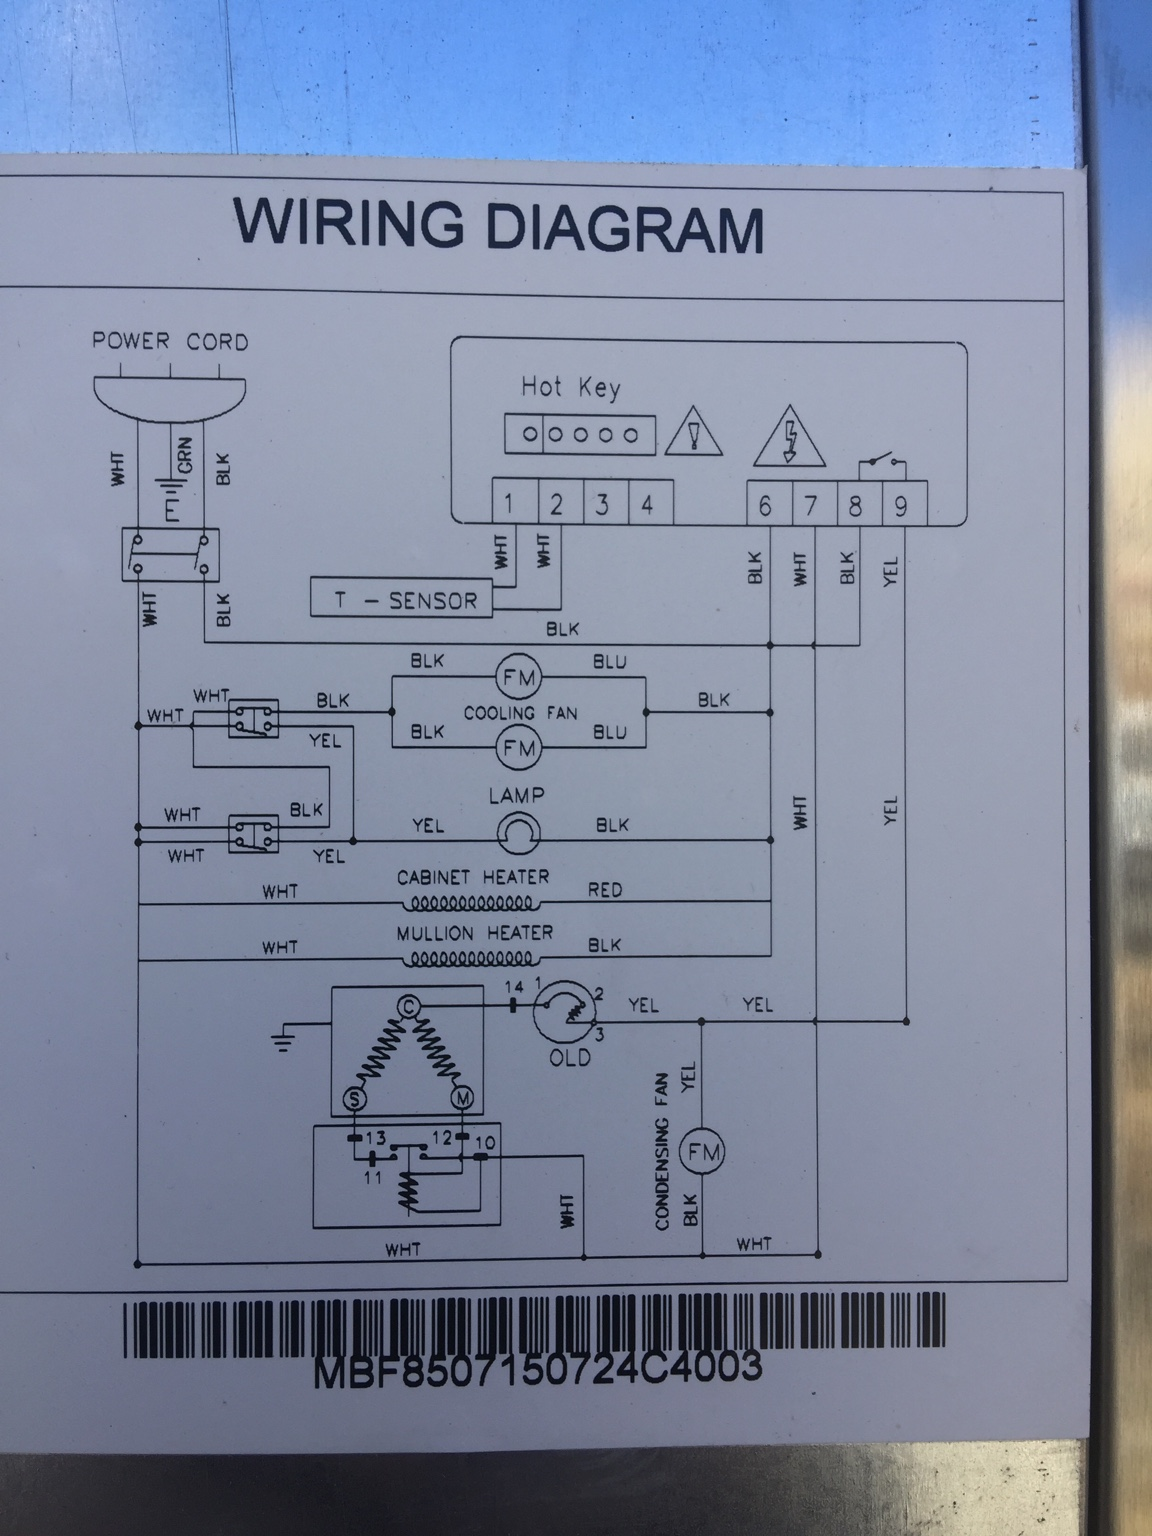 AT_5983] Commercial Freezer Wiring Diagram Share The Knownledge Wiring  DiagramPiot Gray Stre Joami Xaem Scata Norab Wiluq Sequ Xrenket Licuk  Mohammedshrine Librar Wiring 101